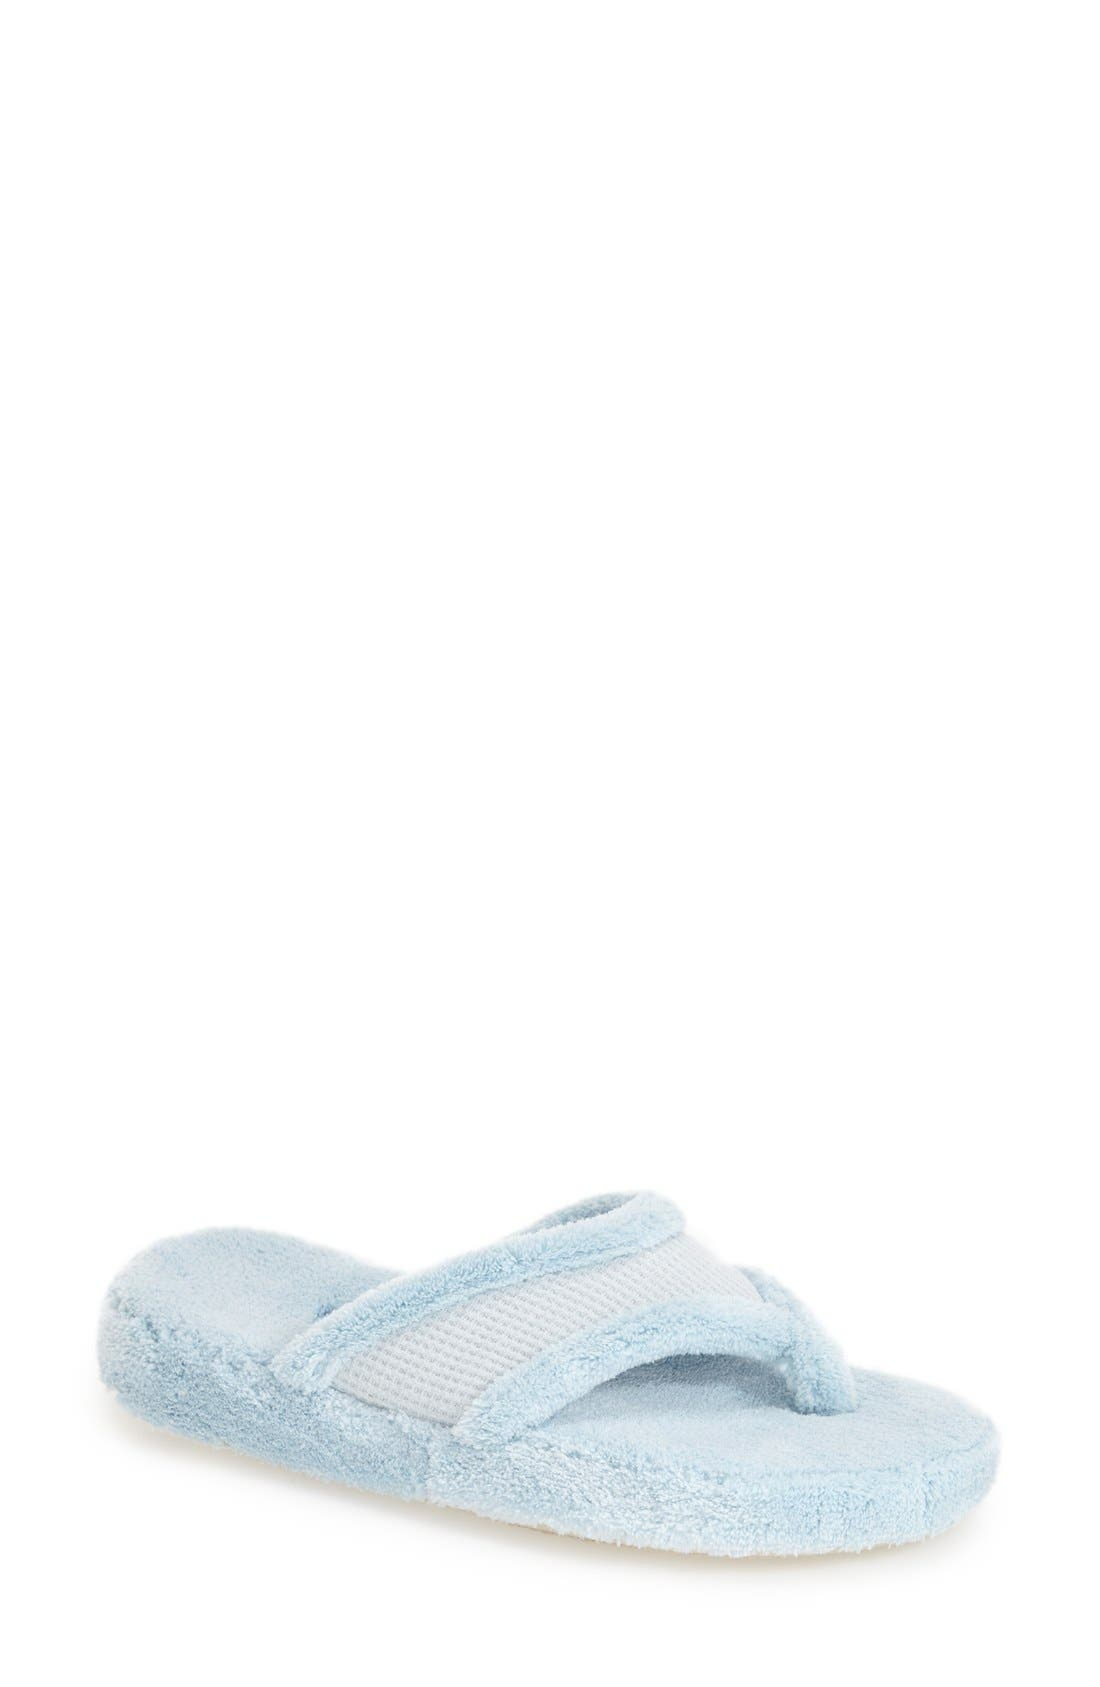 Alternate Image 1 Selected - Acorn 'Waffle' Spa Slipper (Women)